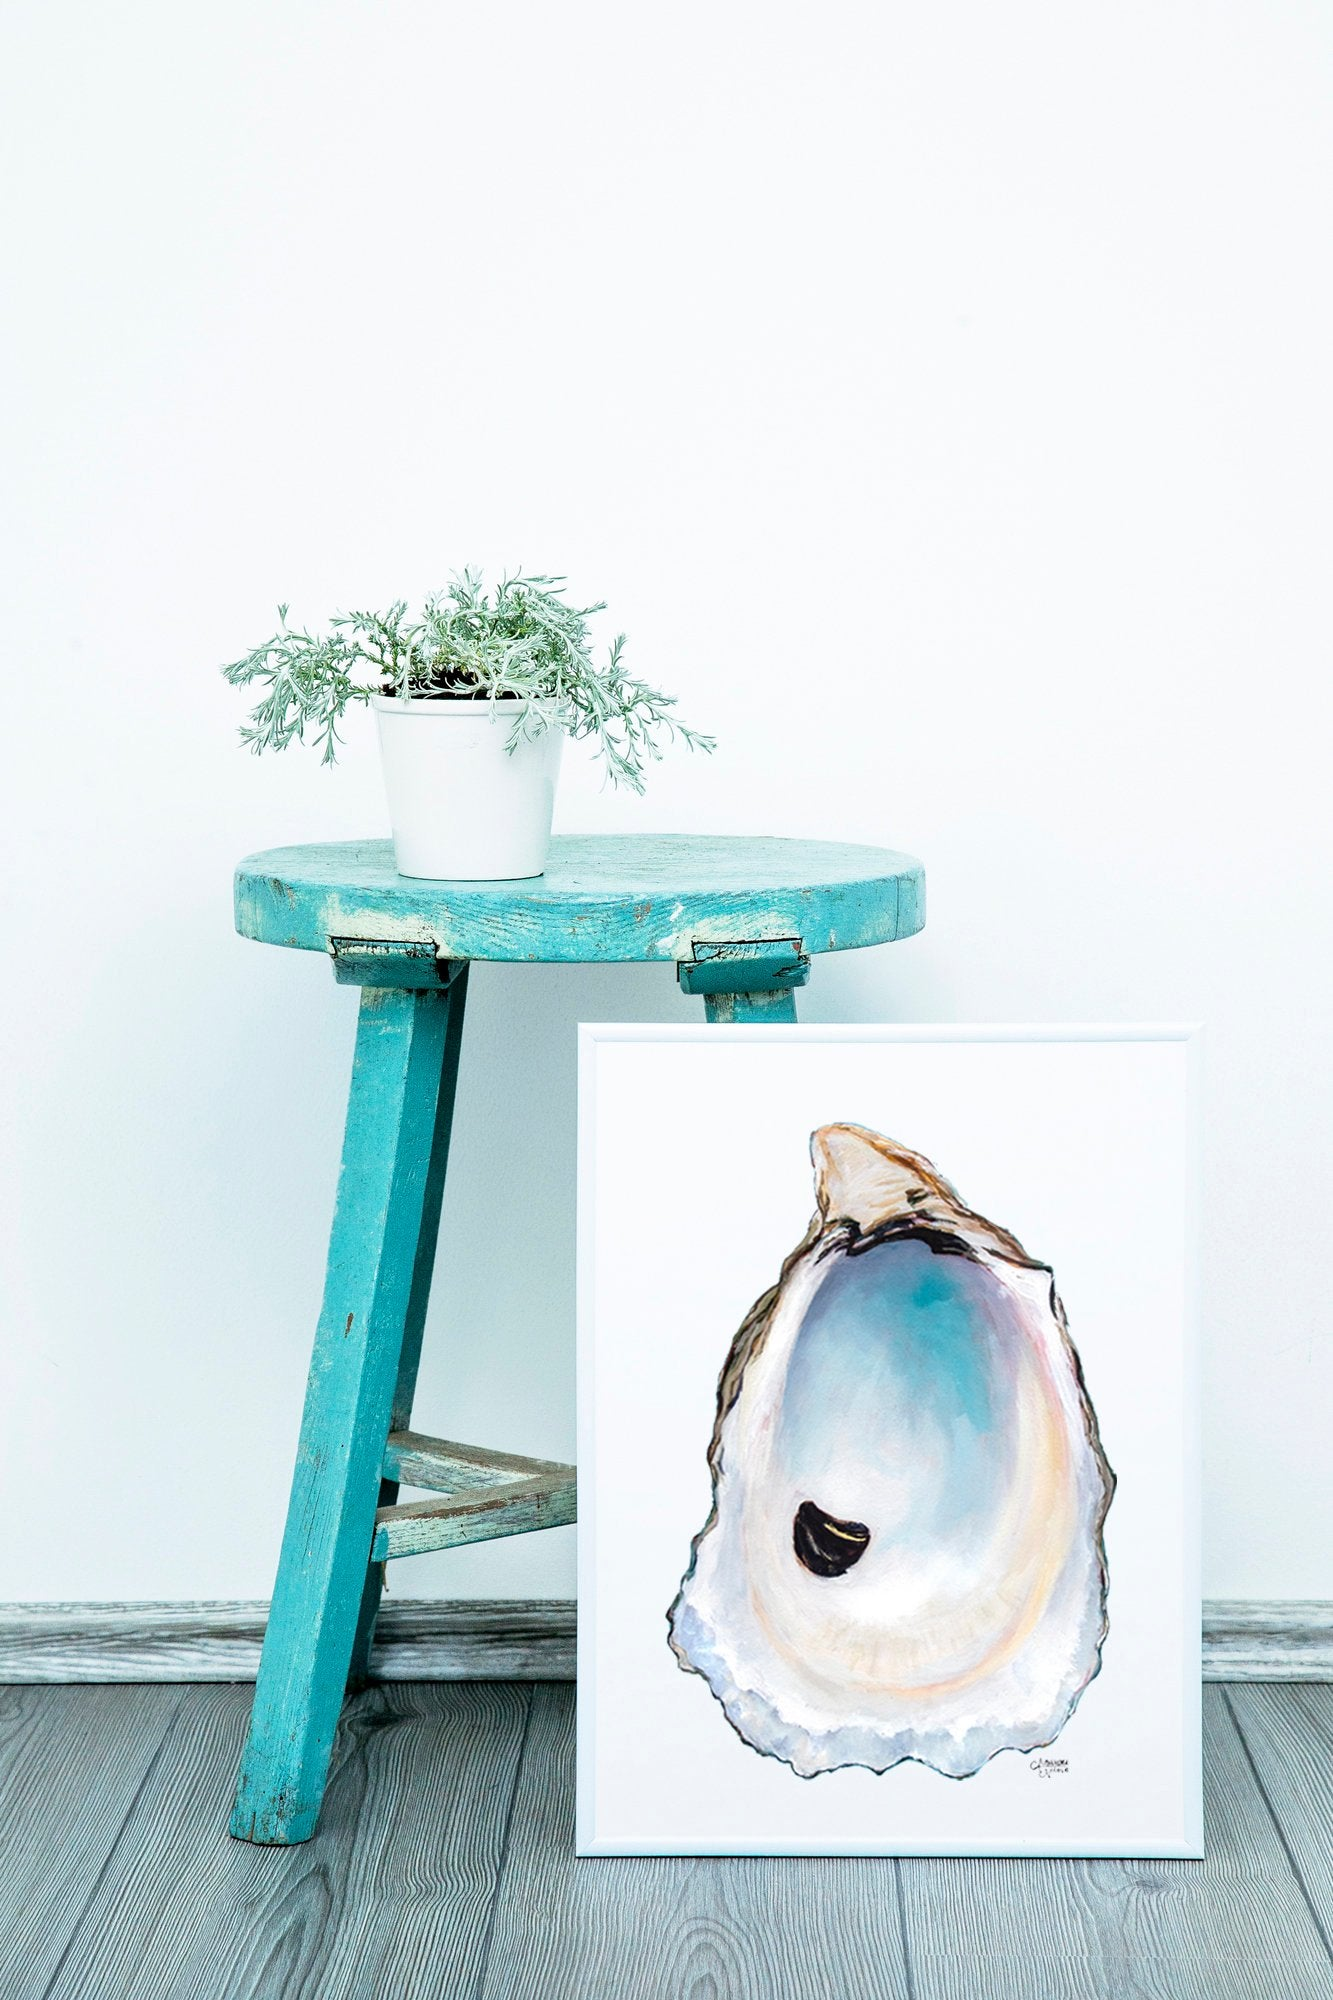 Oyster Shell Art Print resting against a blue stool. Art by Coastal Artist Alexandra Nicole $27